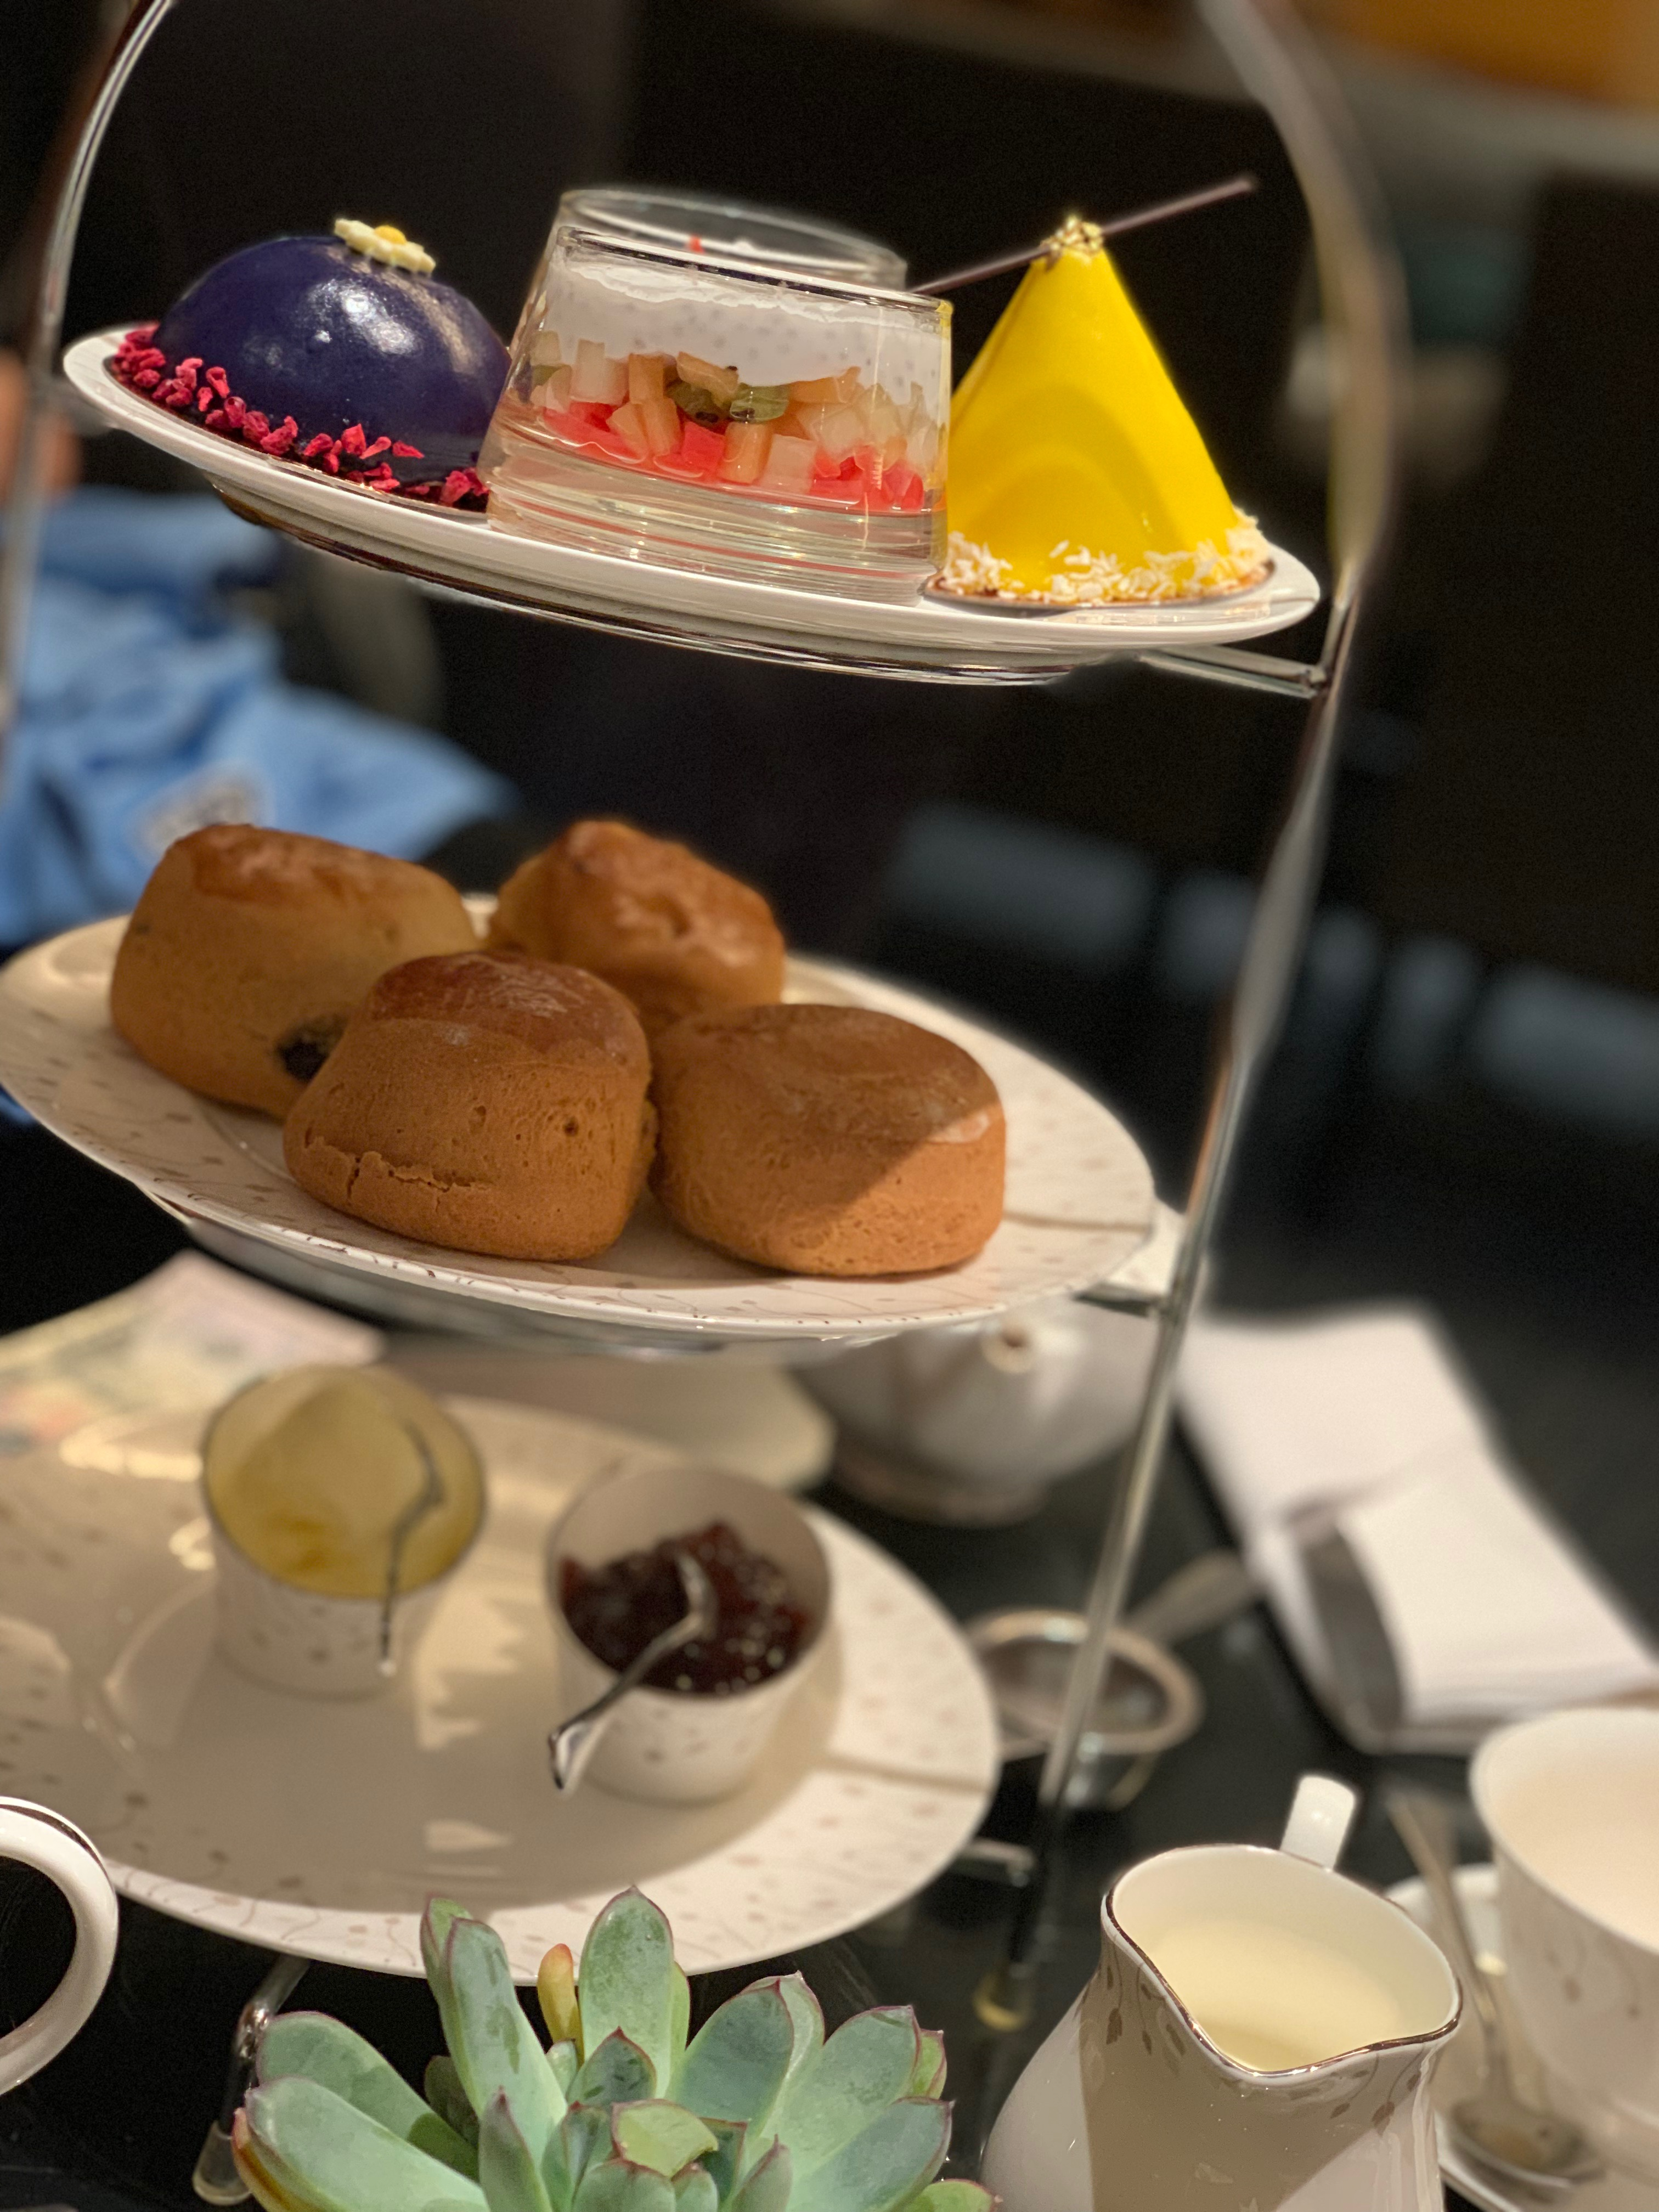 Afternoon tea at the Sofitel Hotel T5